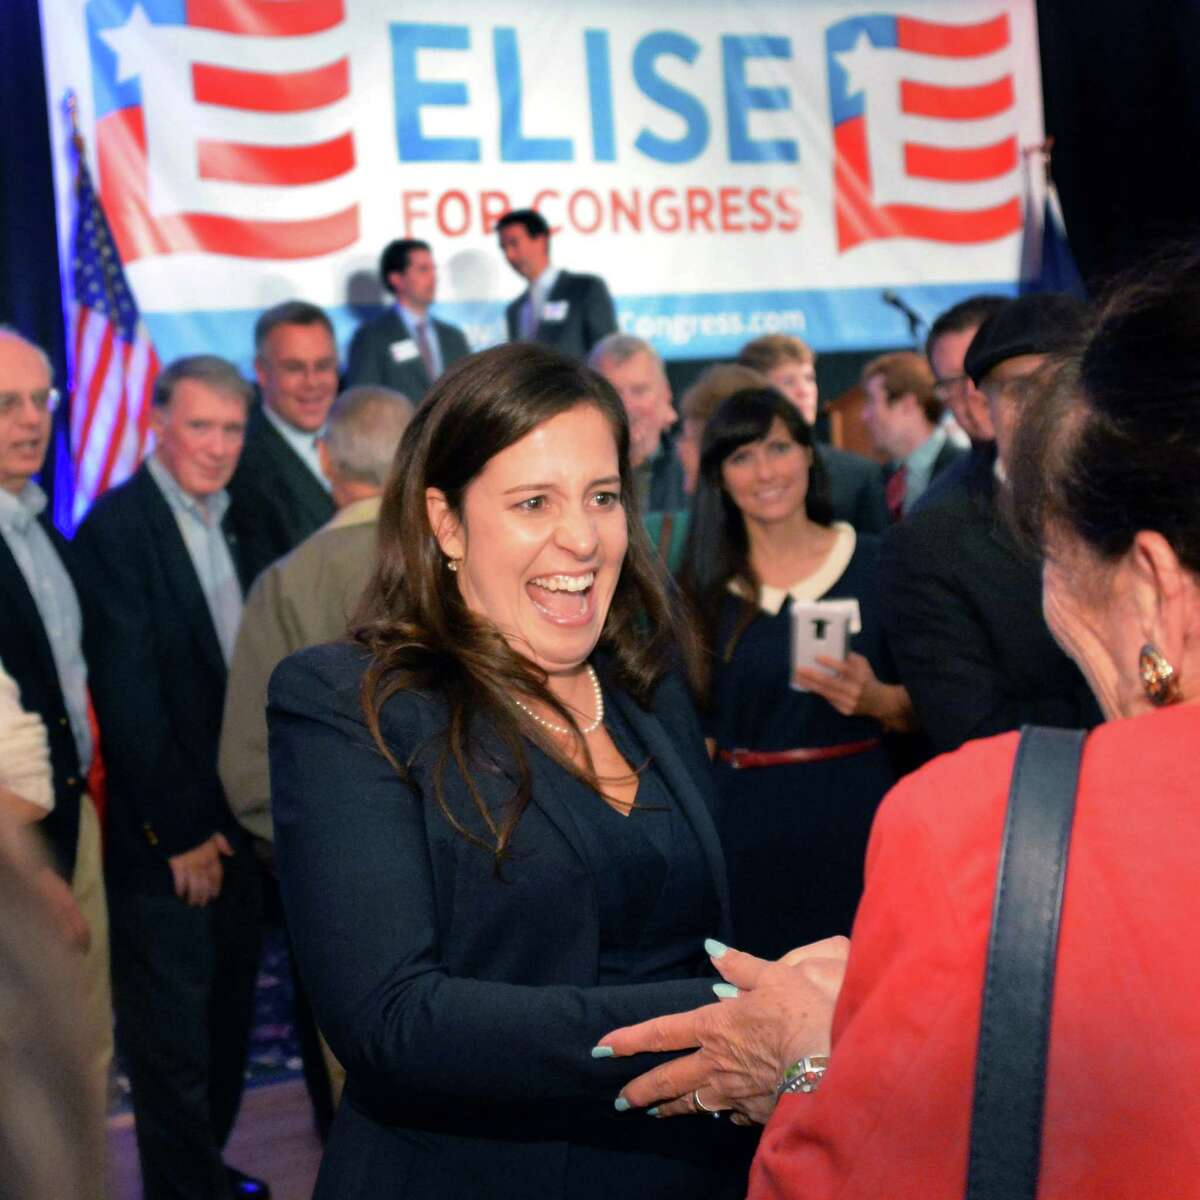 Republican Elise Stefanik greets supporters after winning the 21st Congressional District Tuesday Nov. 4, 2014, in Glens Falls, NY. (John Carl D'Annibale / Times Union)